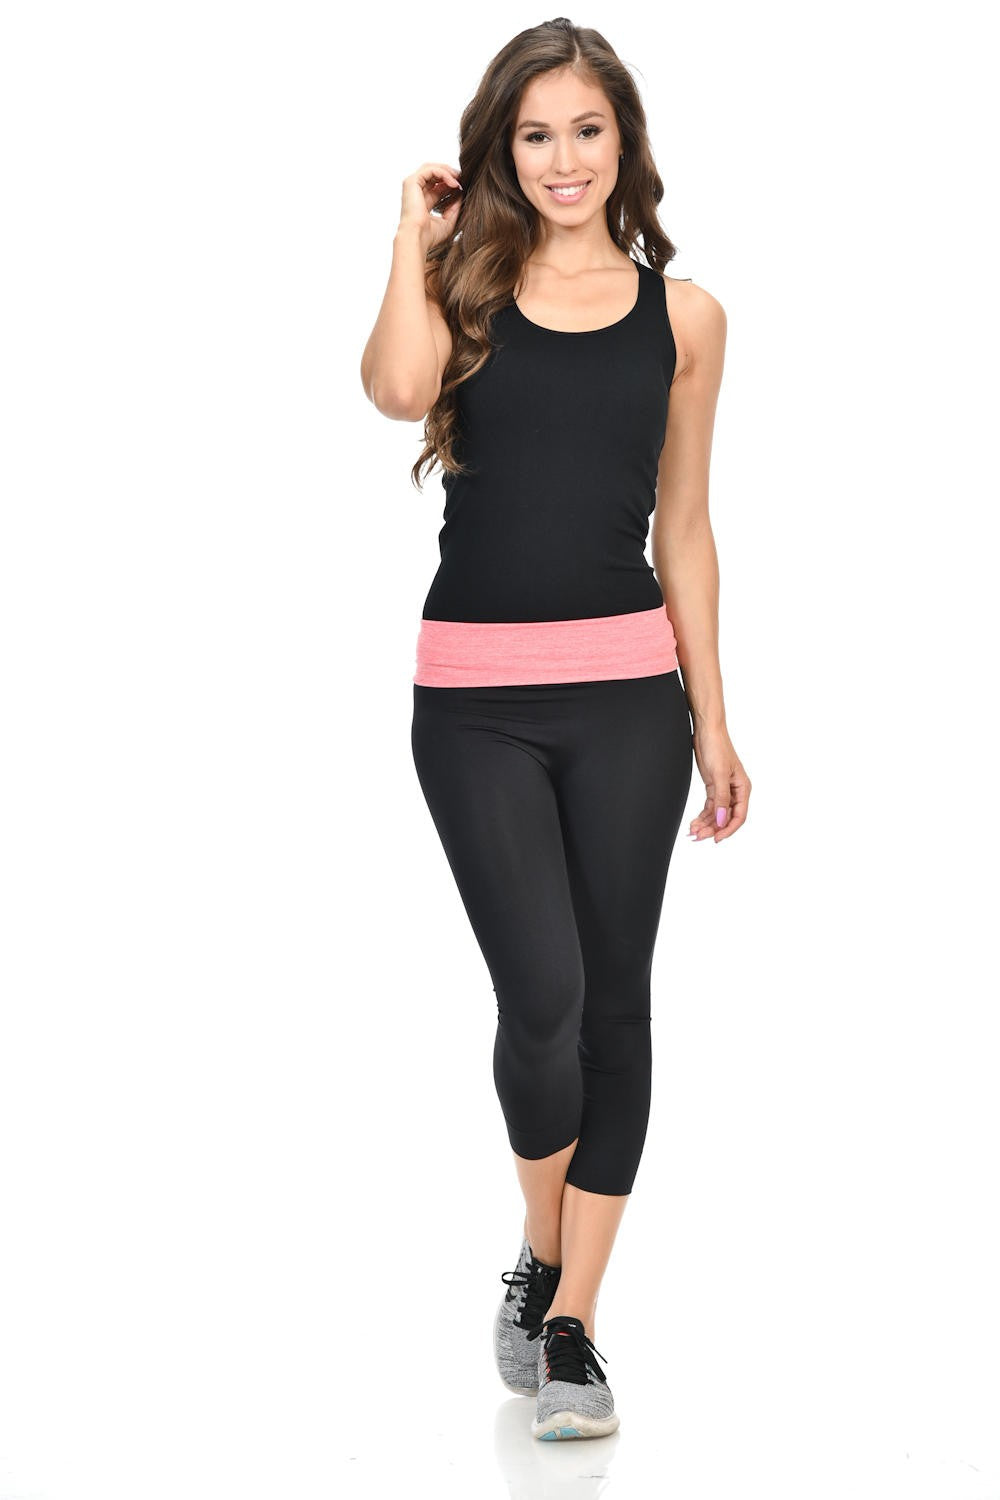 Diamante Women's Power Flex Yoga Pant Legging Sportswear - P162021